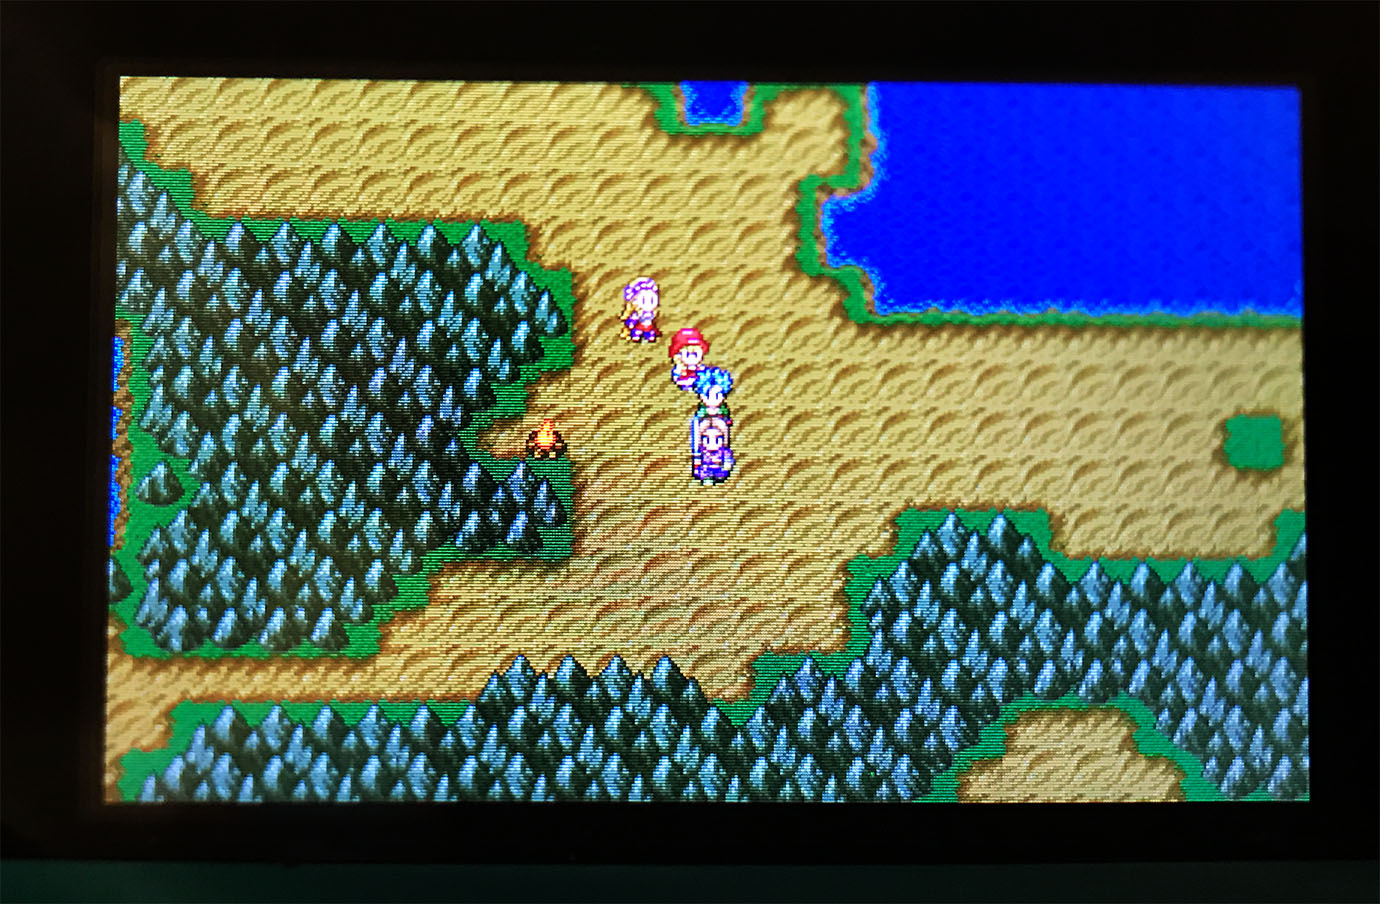 dragon-quest-xi-4